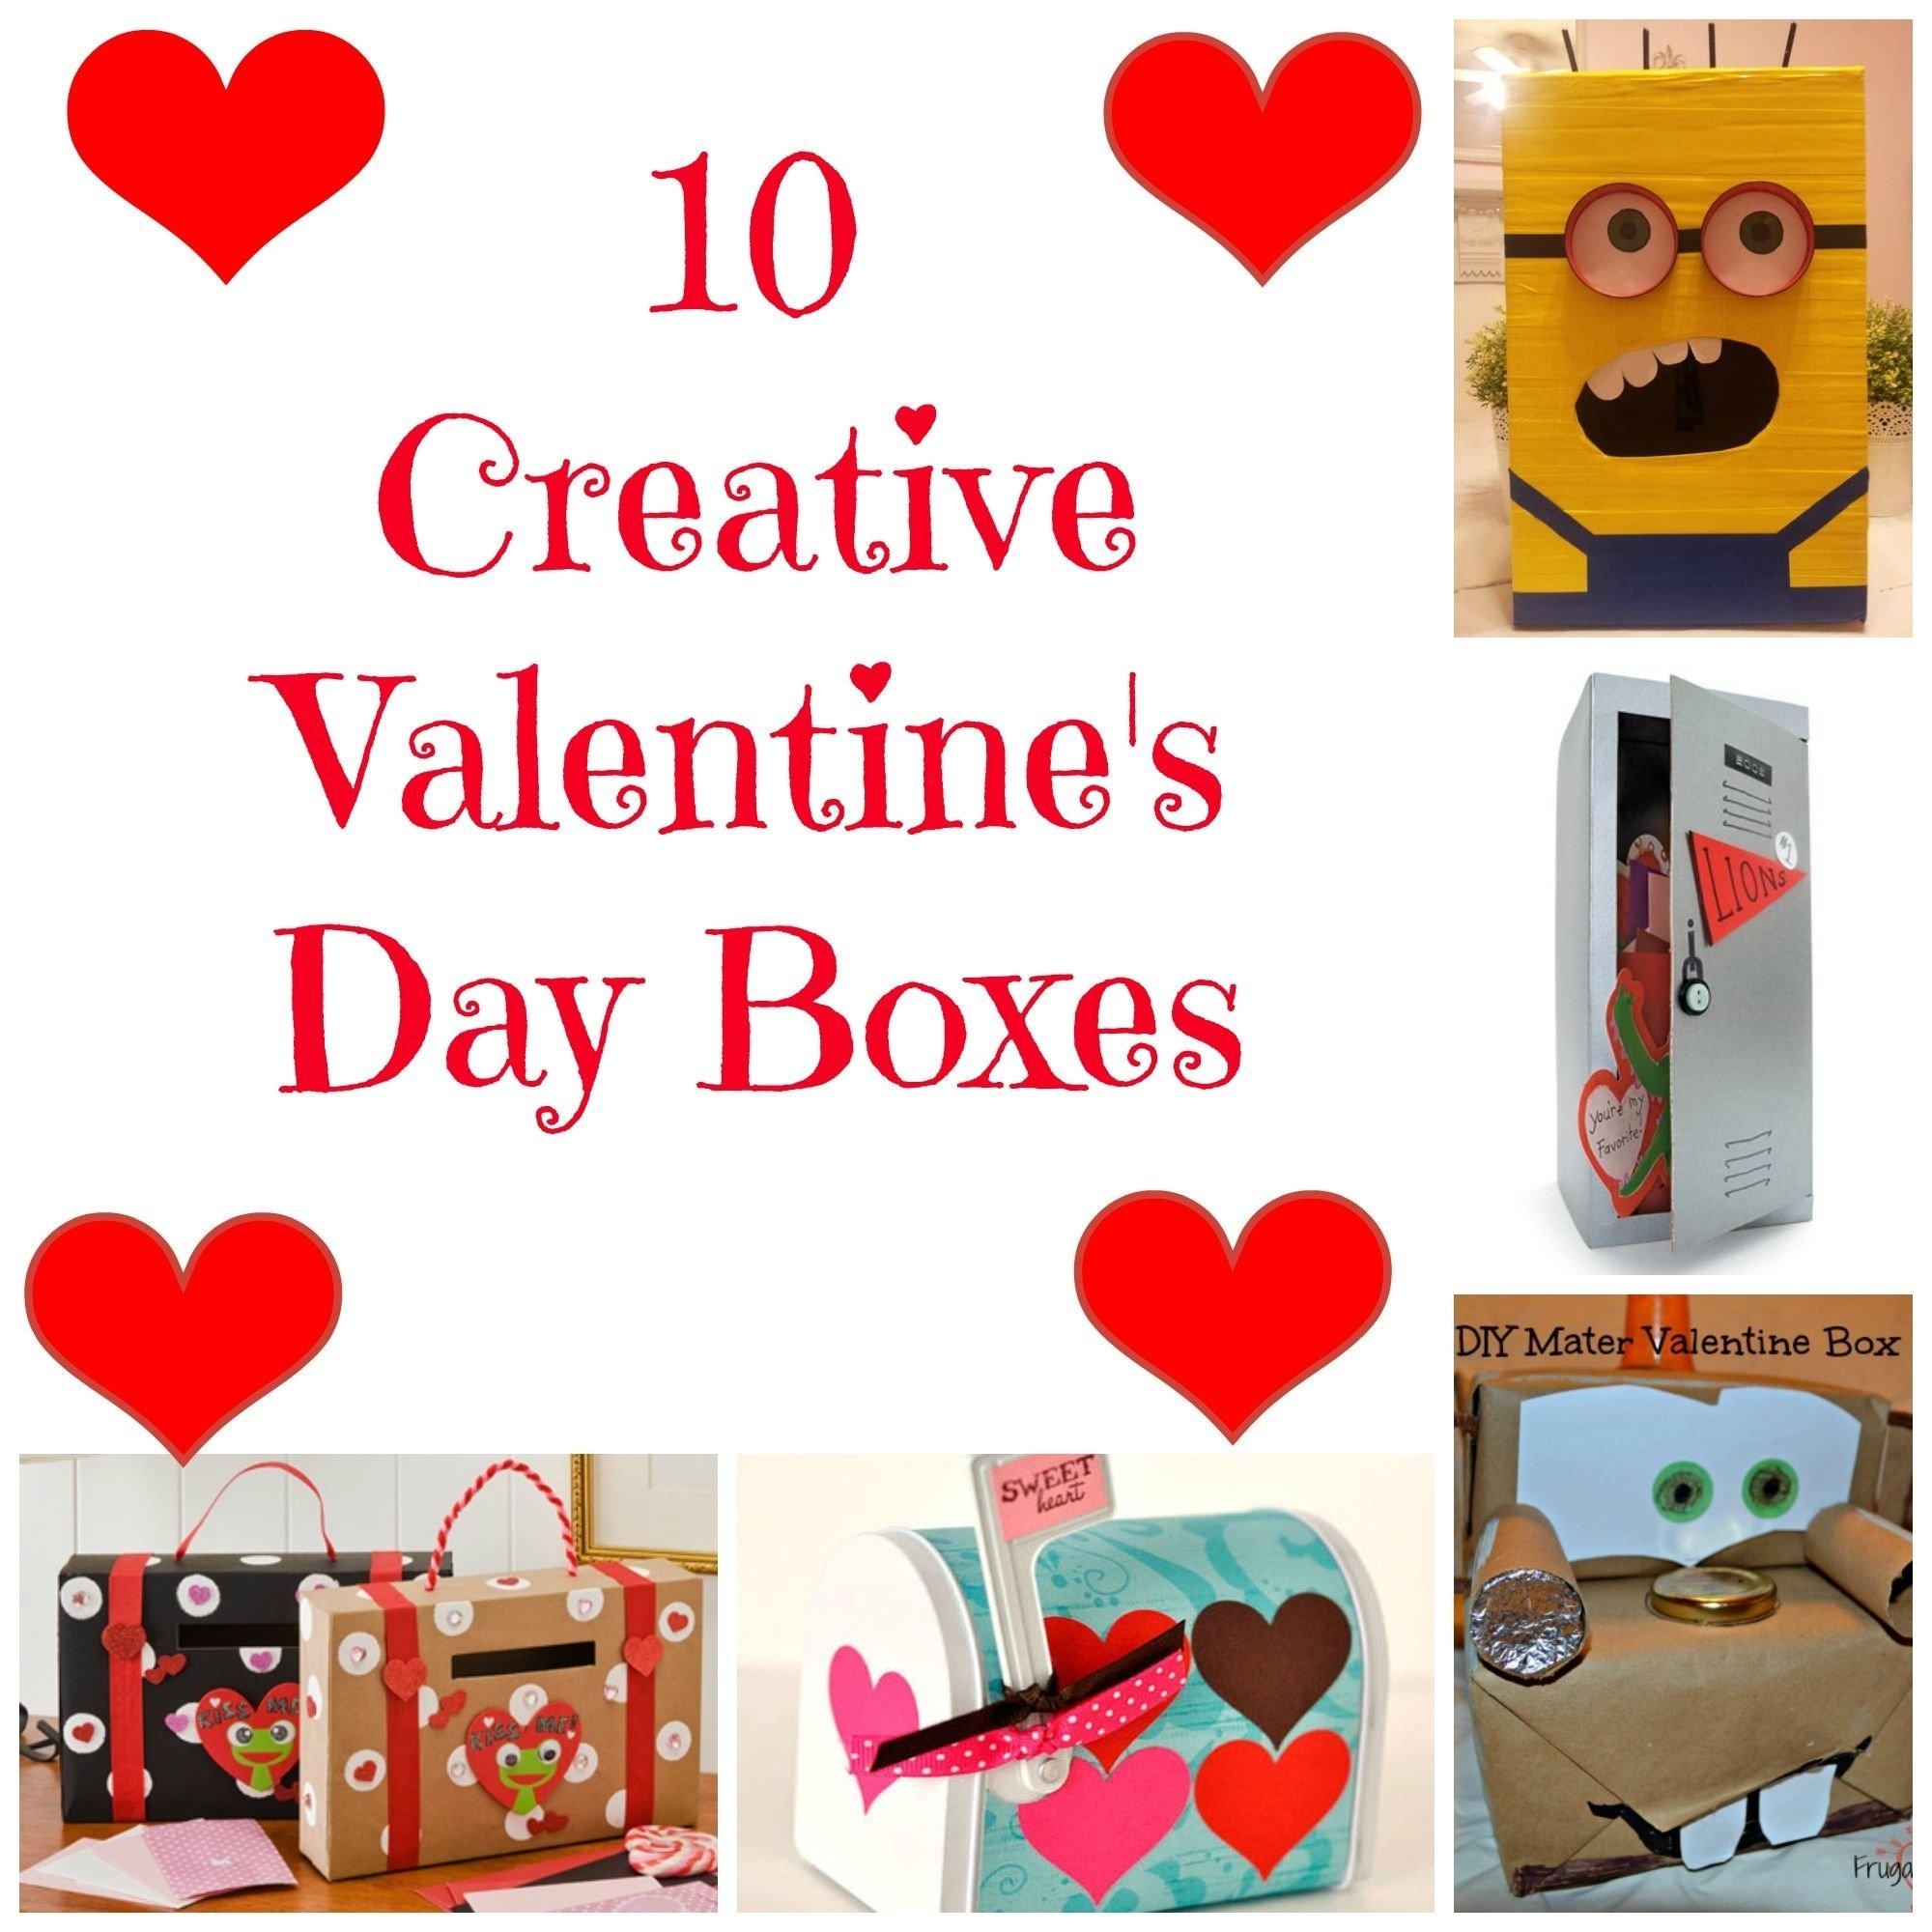 valentine's day box ideas for kids to make | construction paper, diy